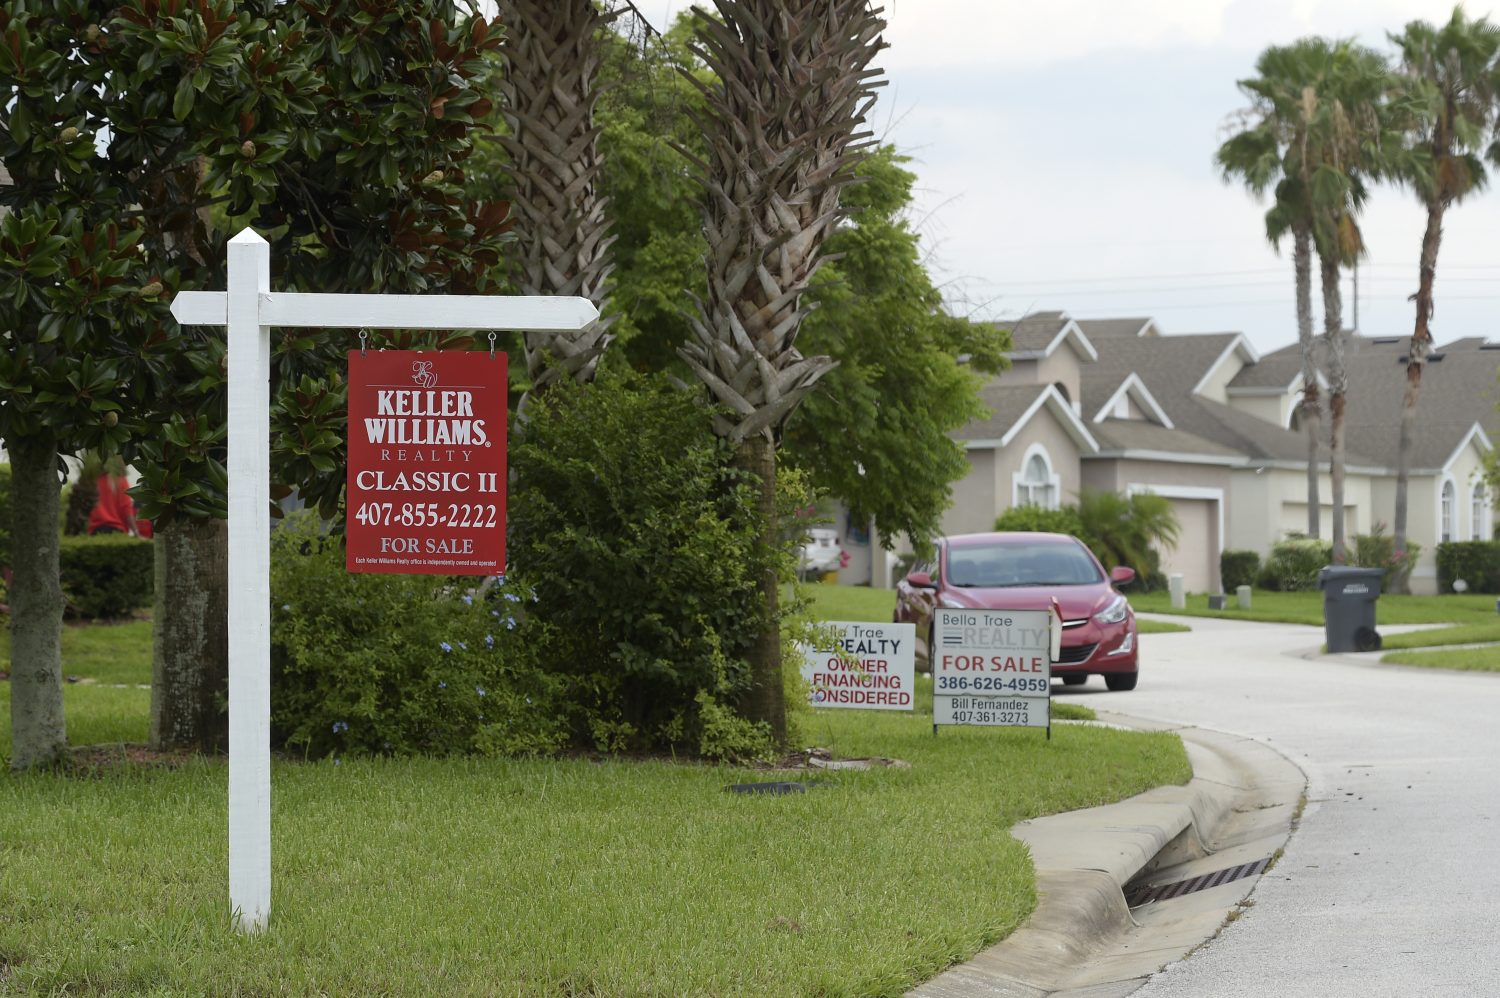 FILE PHOTO: For Sale signs stand in front of houses in a neighborhood in Davenport, Florida, U.S., June 29, 2016. REUTERS/Phelan Ebenhack